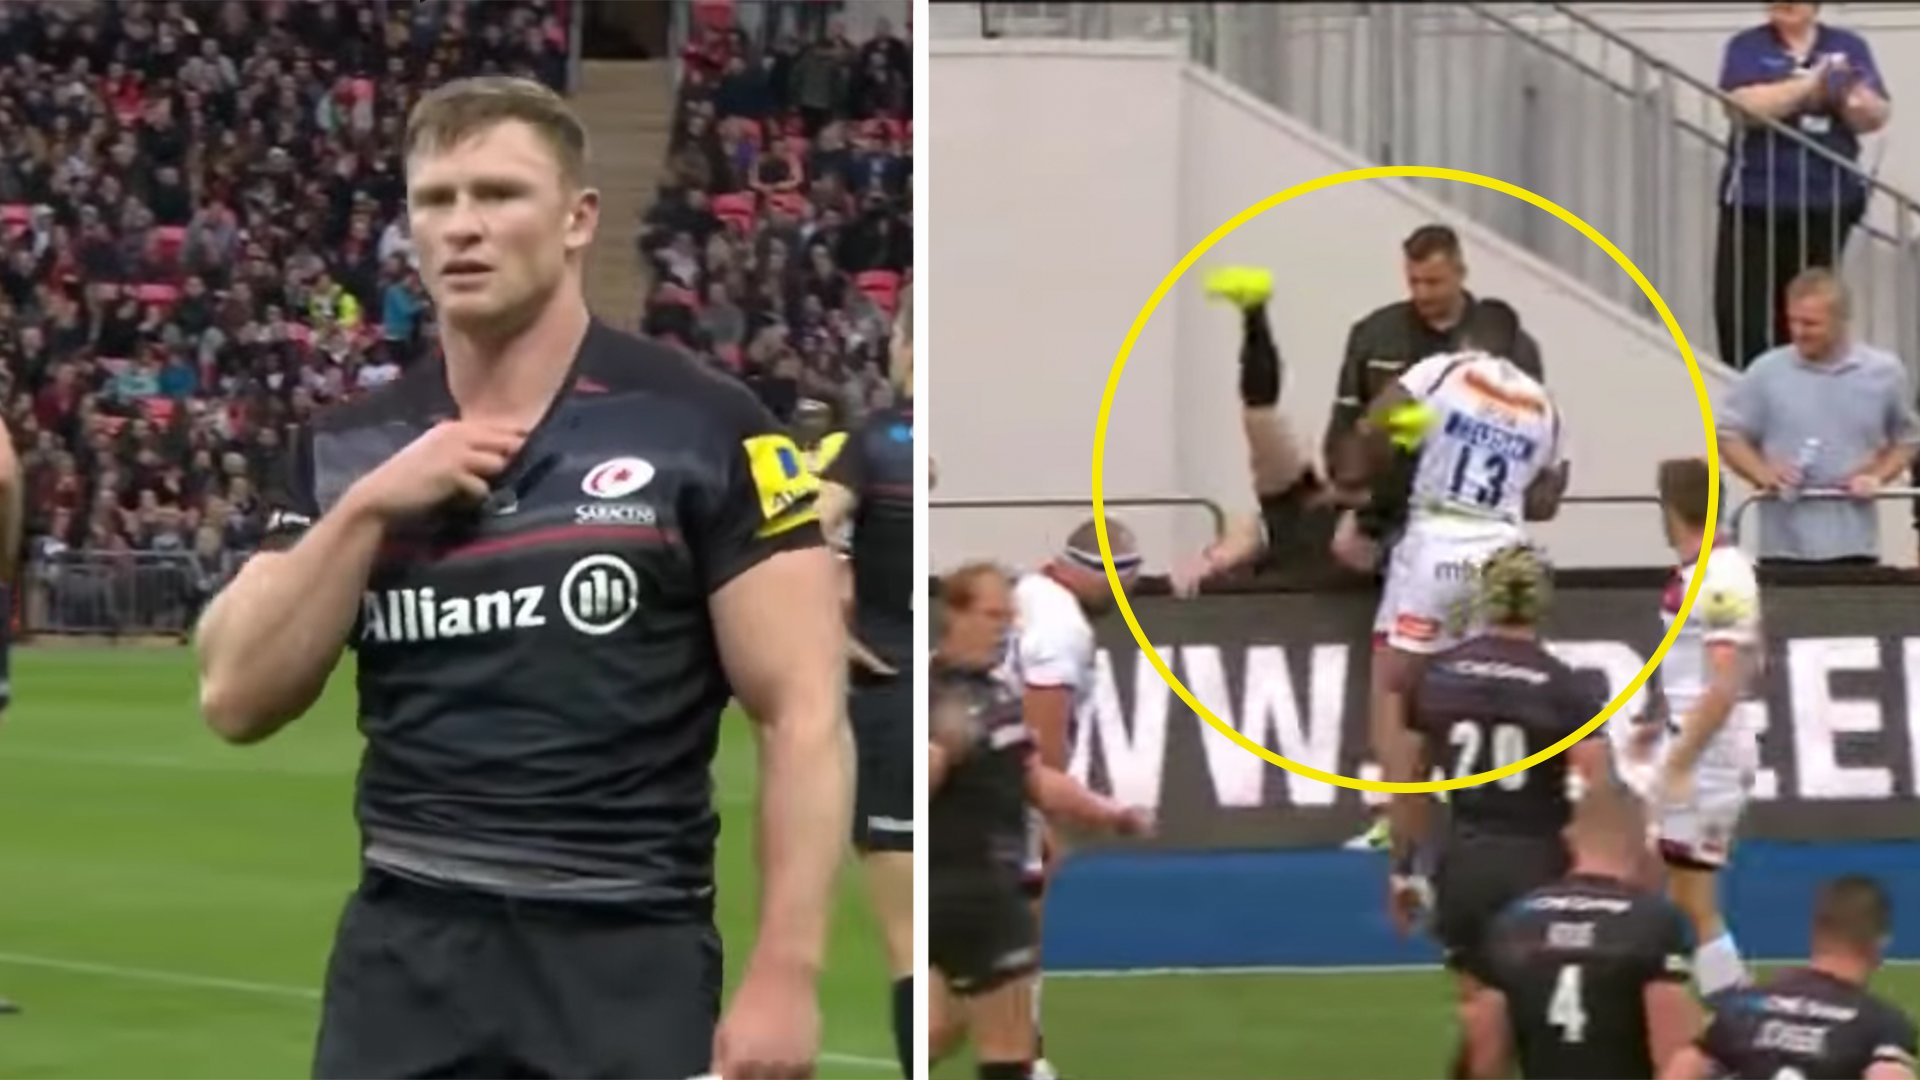 Chris Ashton tries to mix it up with Pacific Islander and comes off second best